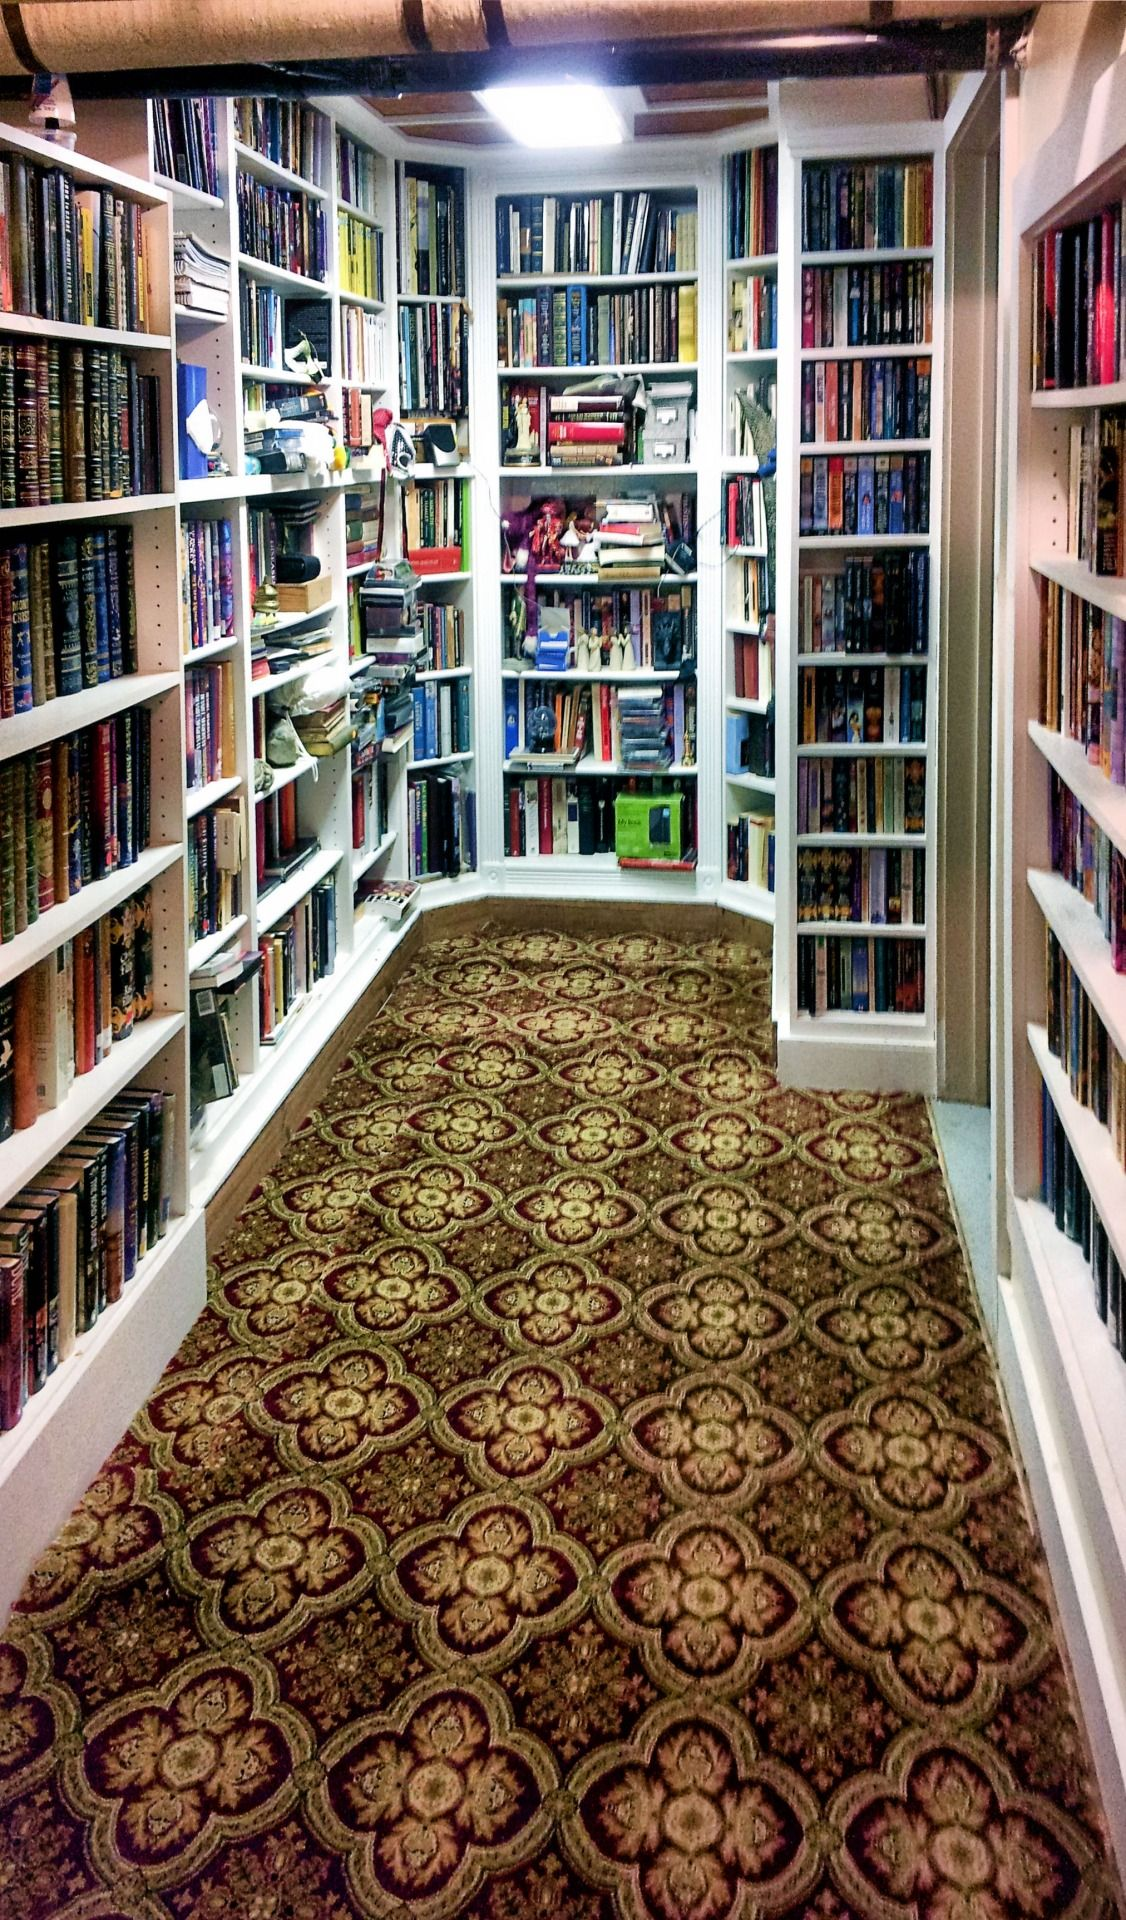 Library Room Ideas For Small Spaces: Even A Small Space Will Work. Just Need A Chair And Good